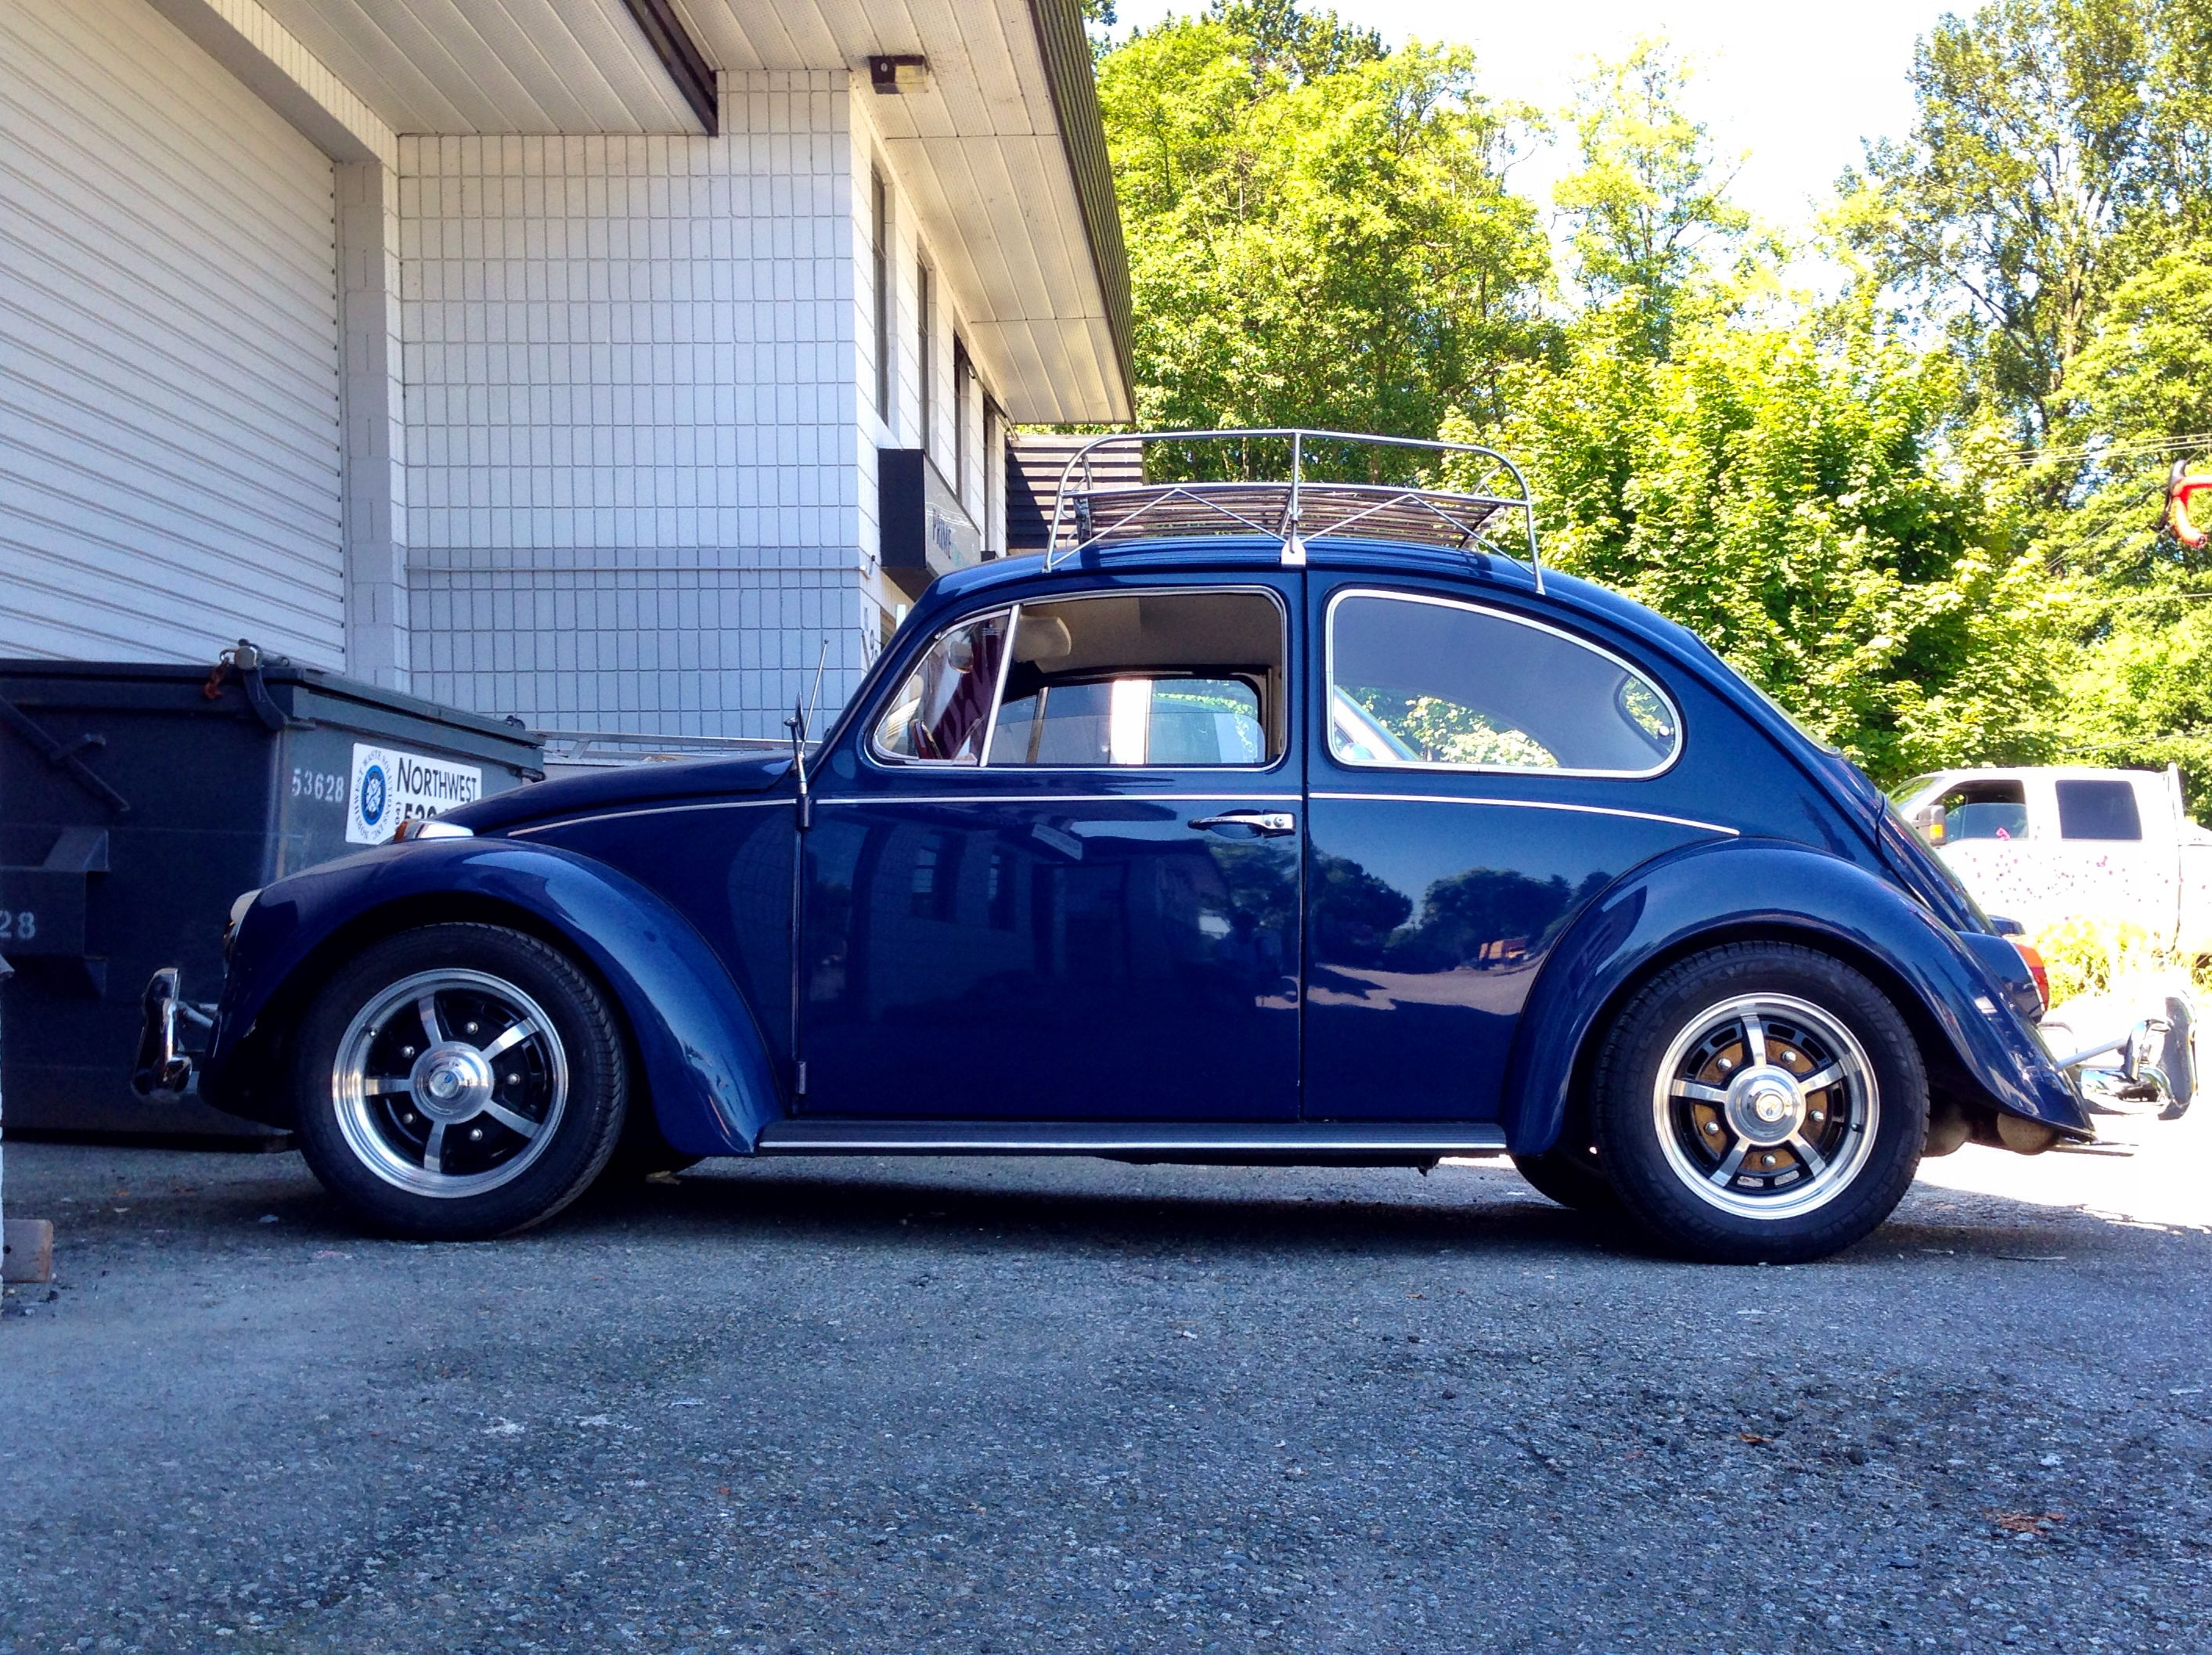 Beautiful classic VW Beetle spotted in North Vancouver. Love that roof rack!